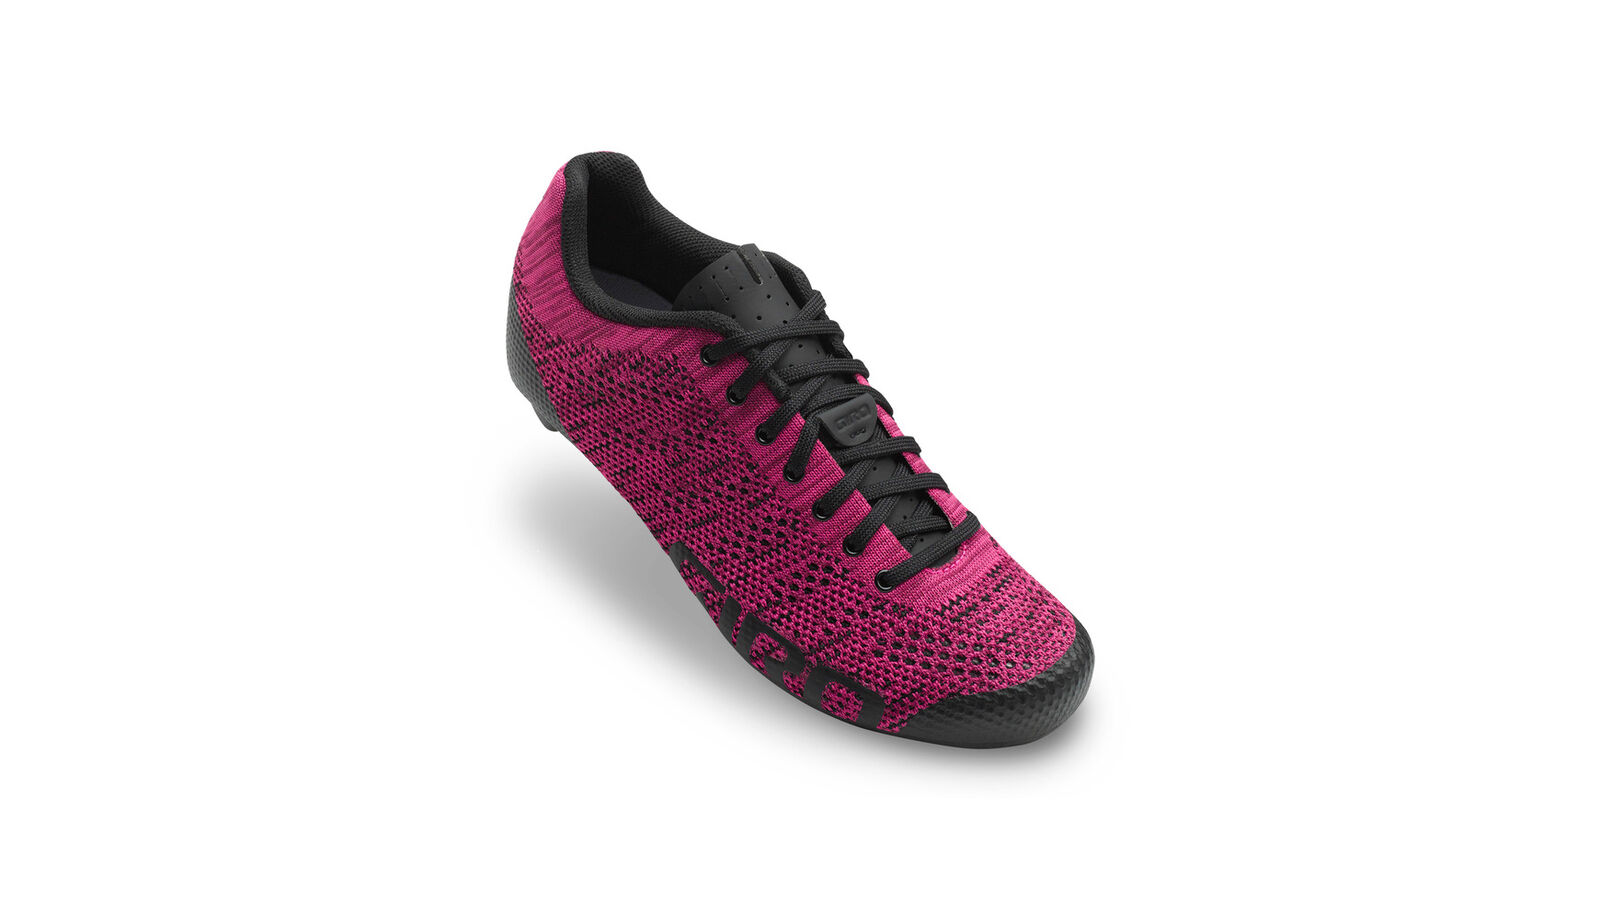 Giro Zapatillas de Bicicleta Empire W Cubierta E70Knit Fucsia Transpirable